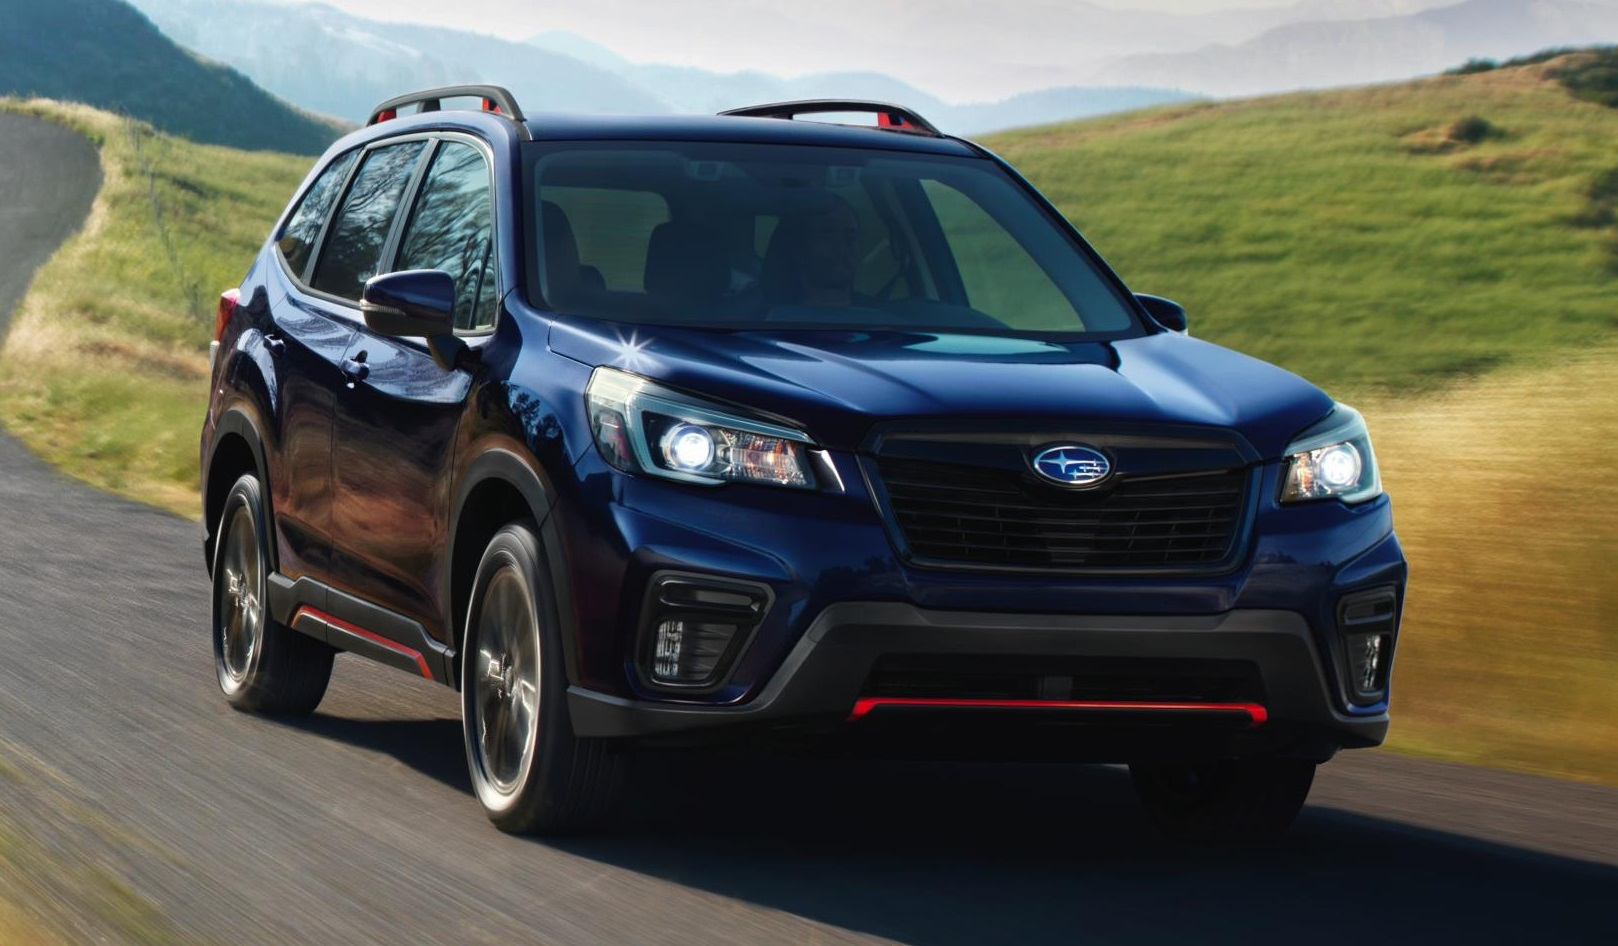 2019 Subaru Forester Msrp Starts At 24 295 Automotivetestdrivers